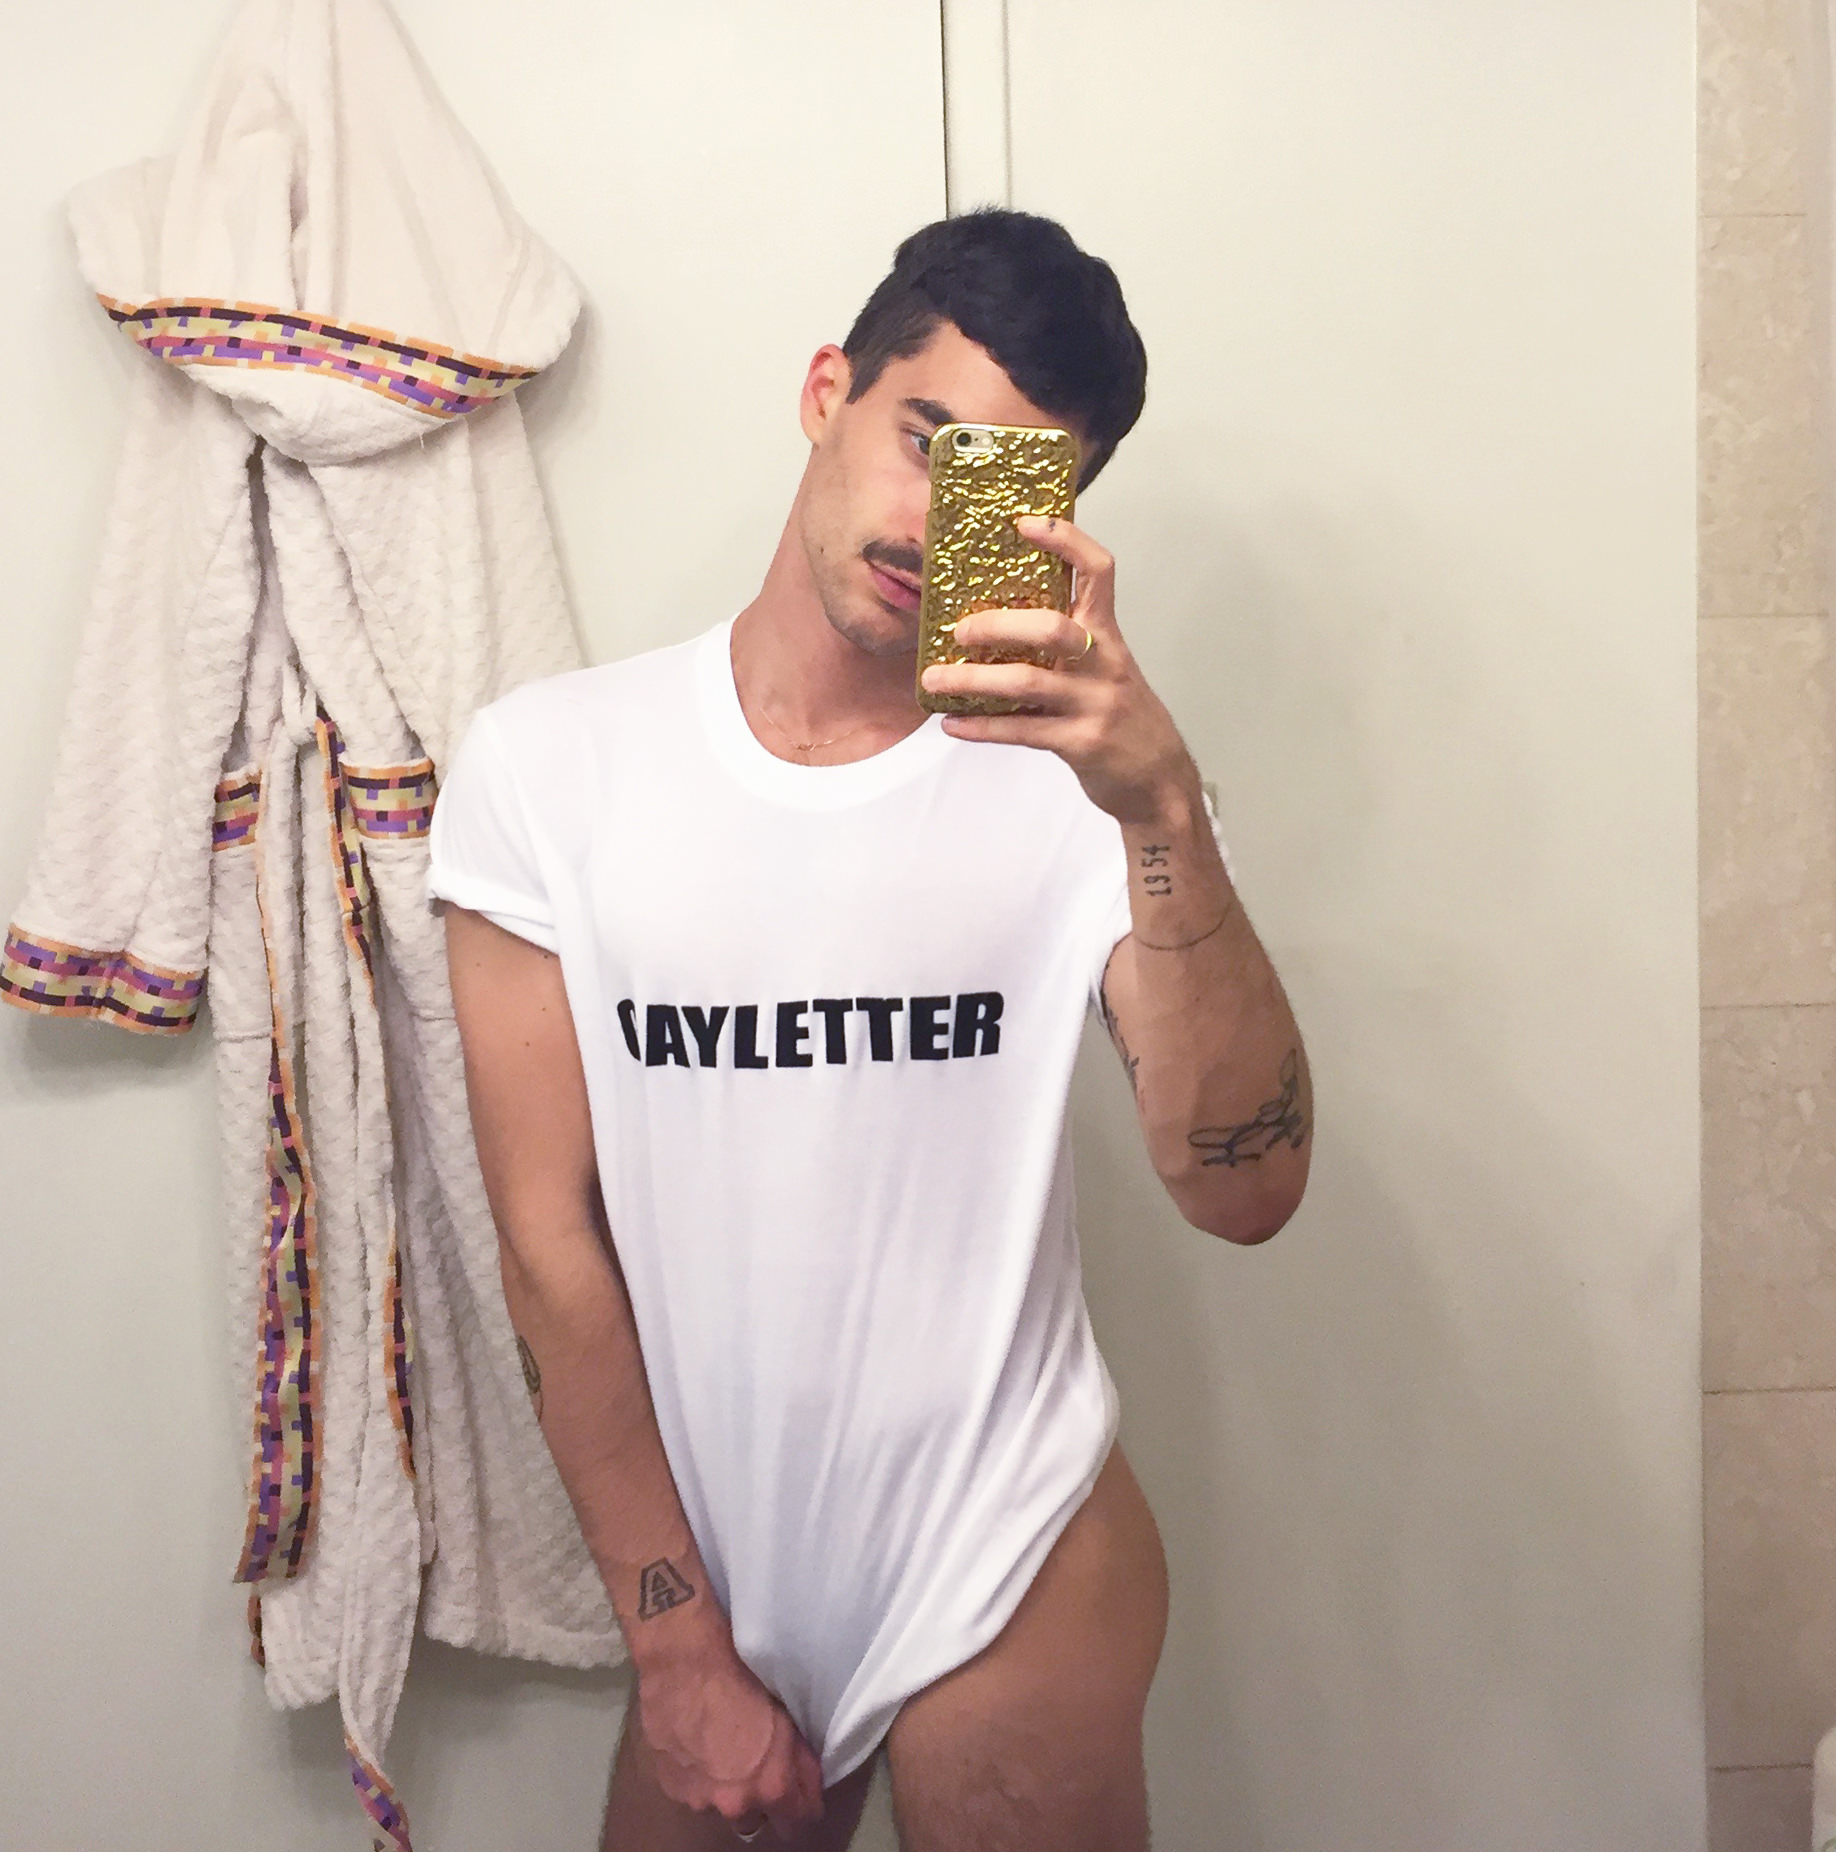 Paolo_1a_GAYLETTER